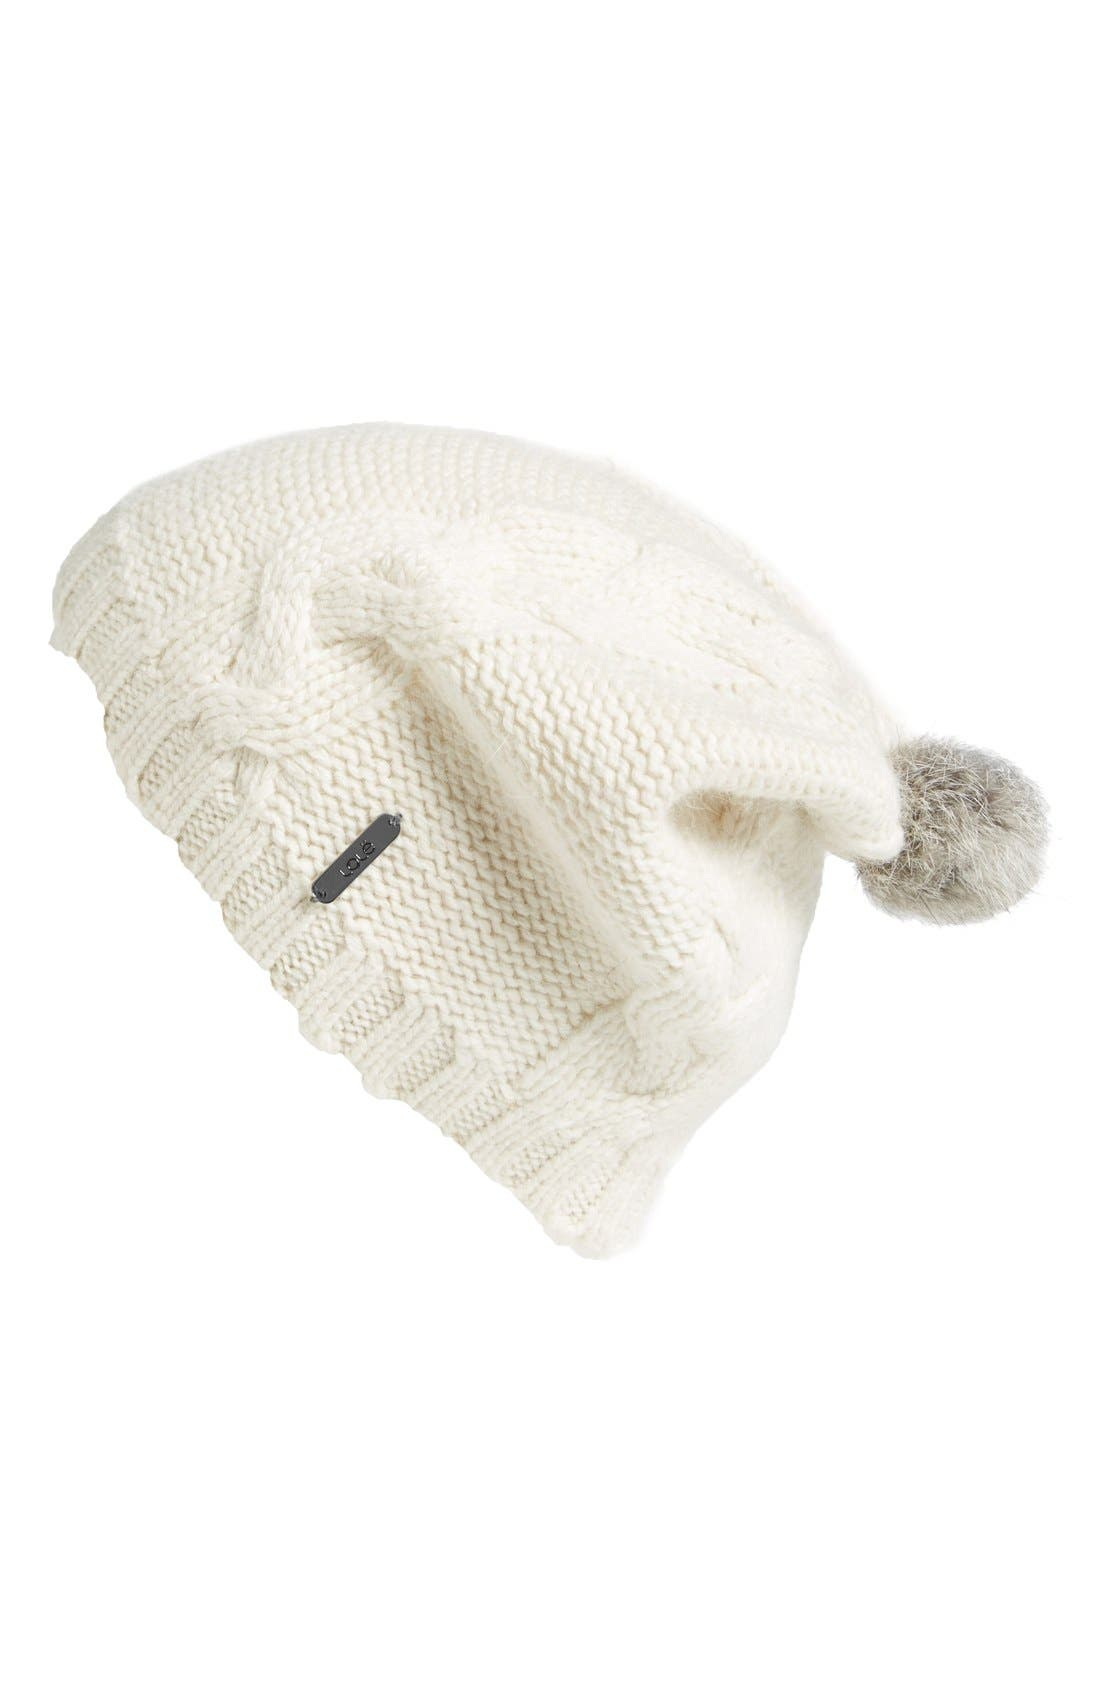 Main Image - Lole Cable Knit Beanie